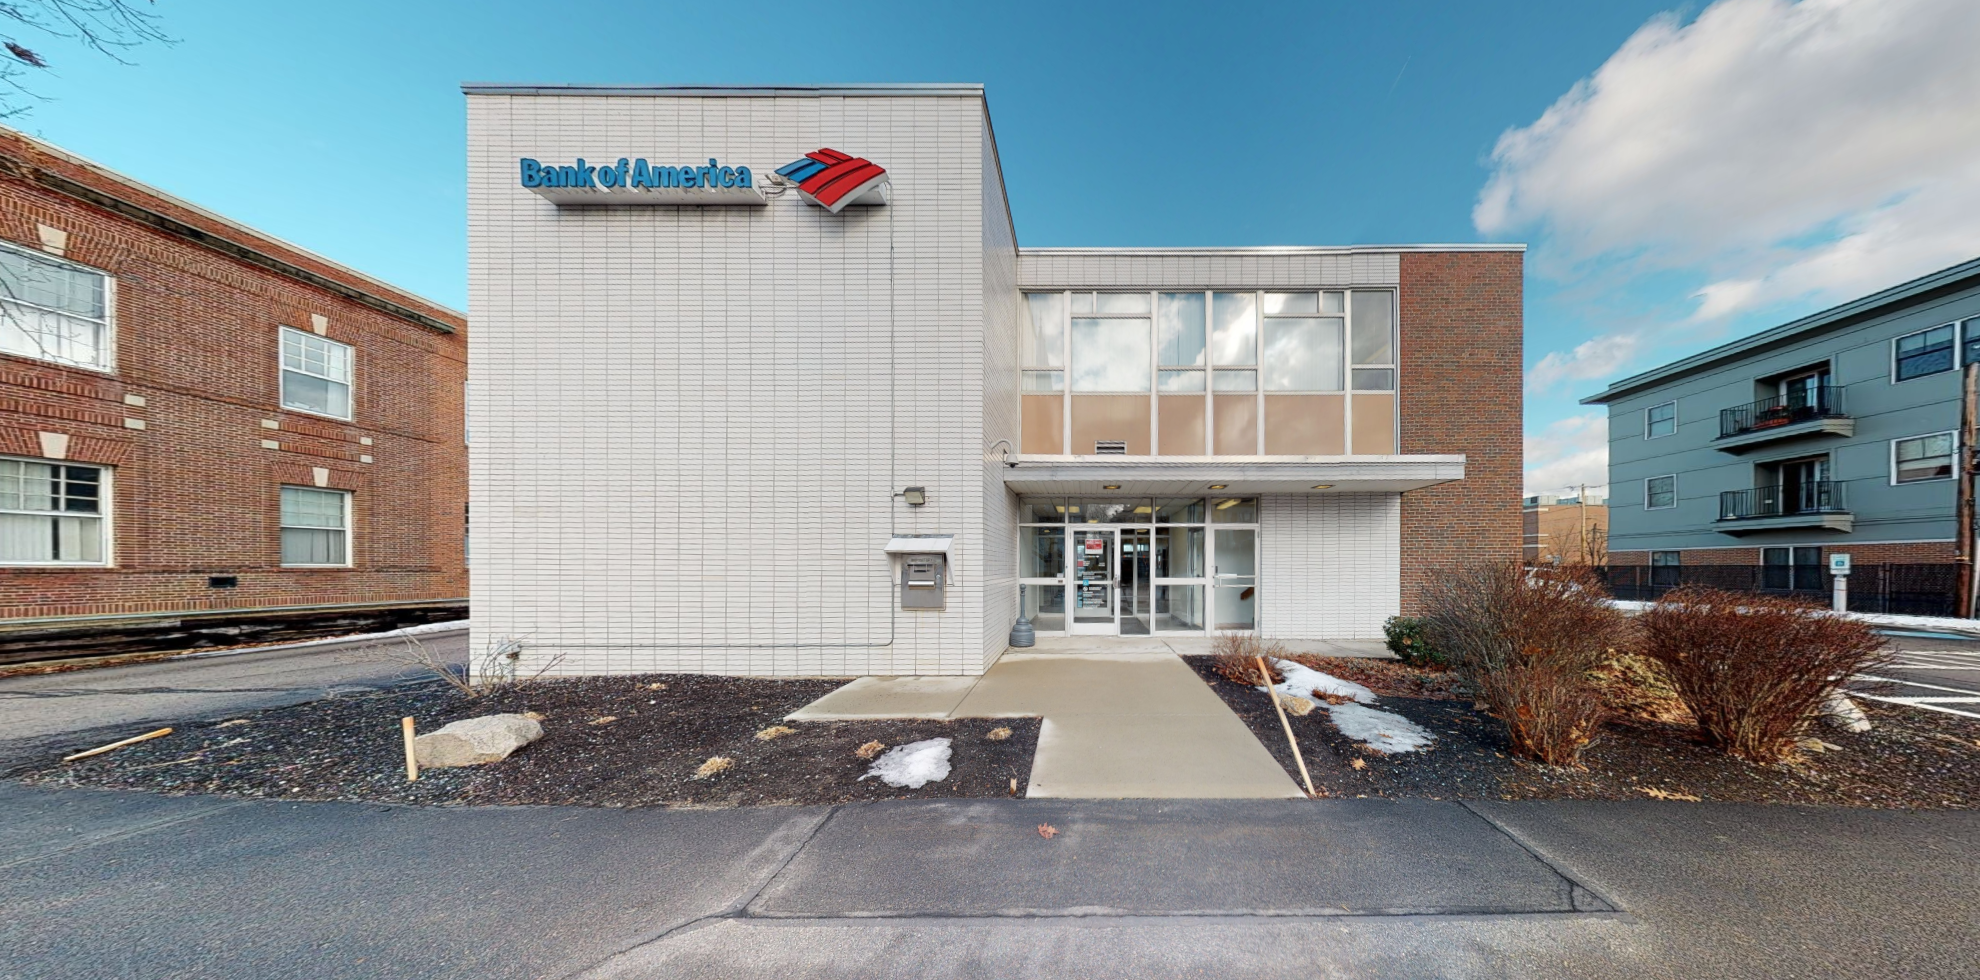 Bank of America financial center with drive-thru ATM   66 S Main St, Rochester, NH 03867